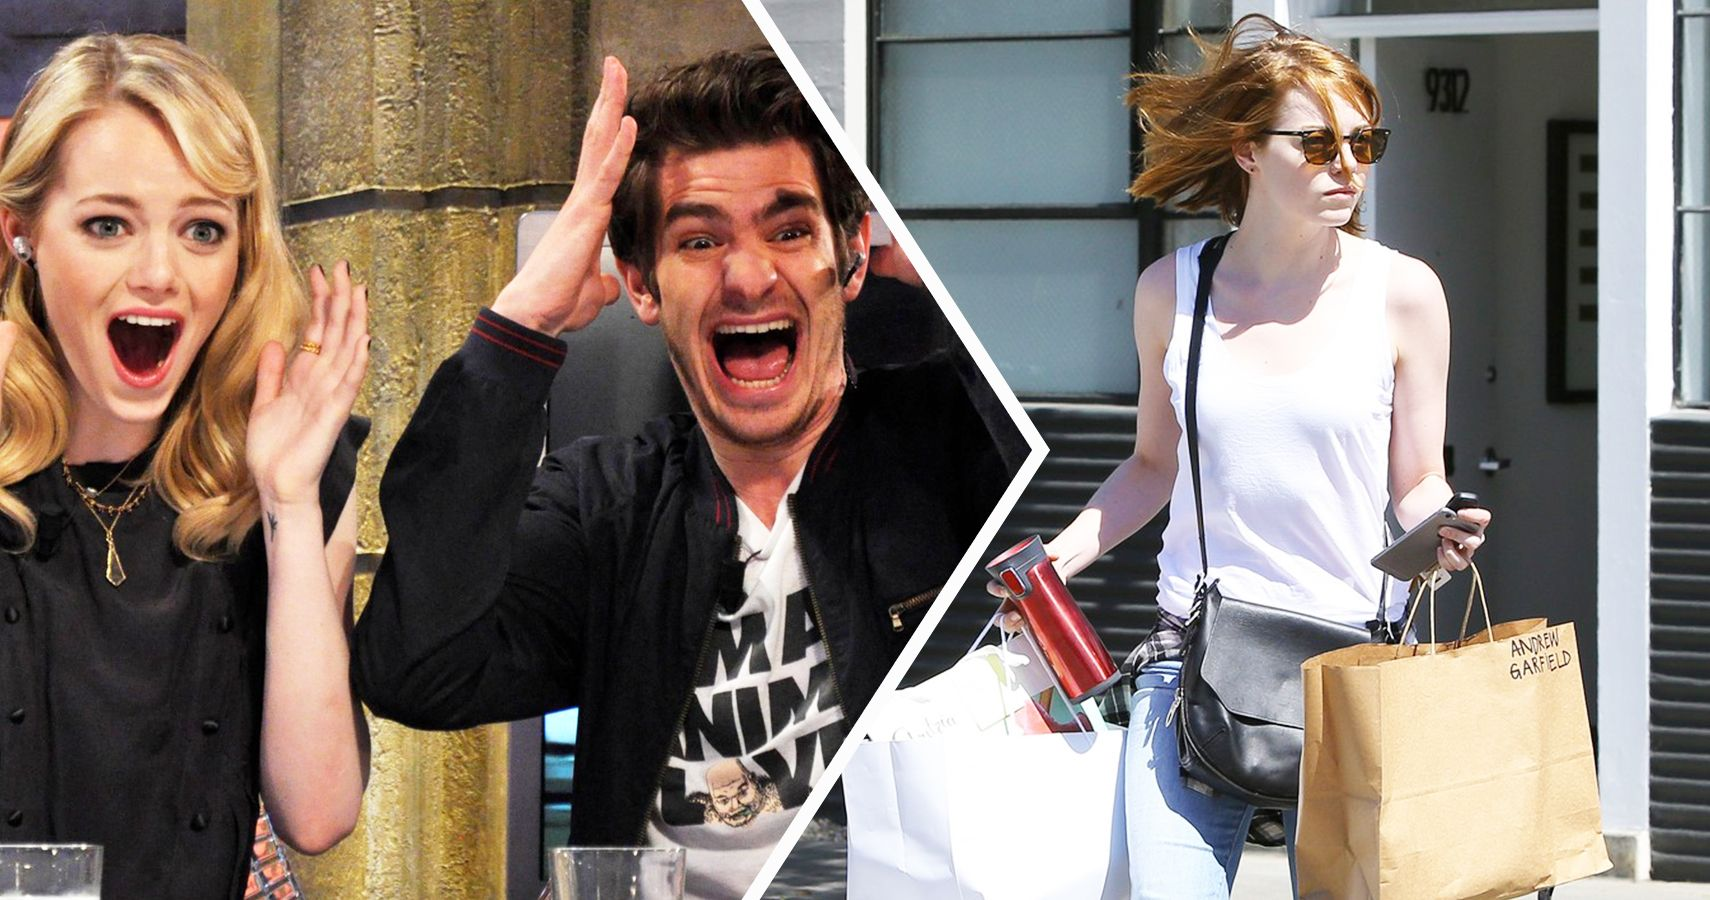 d5436490aeb 16 Secrets Behind Emma Stone And Andrew Garfield's Relationship